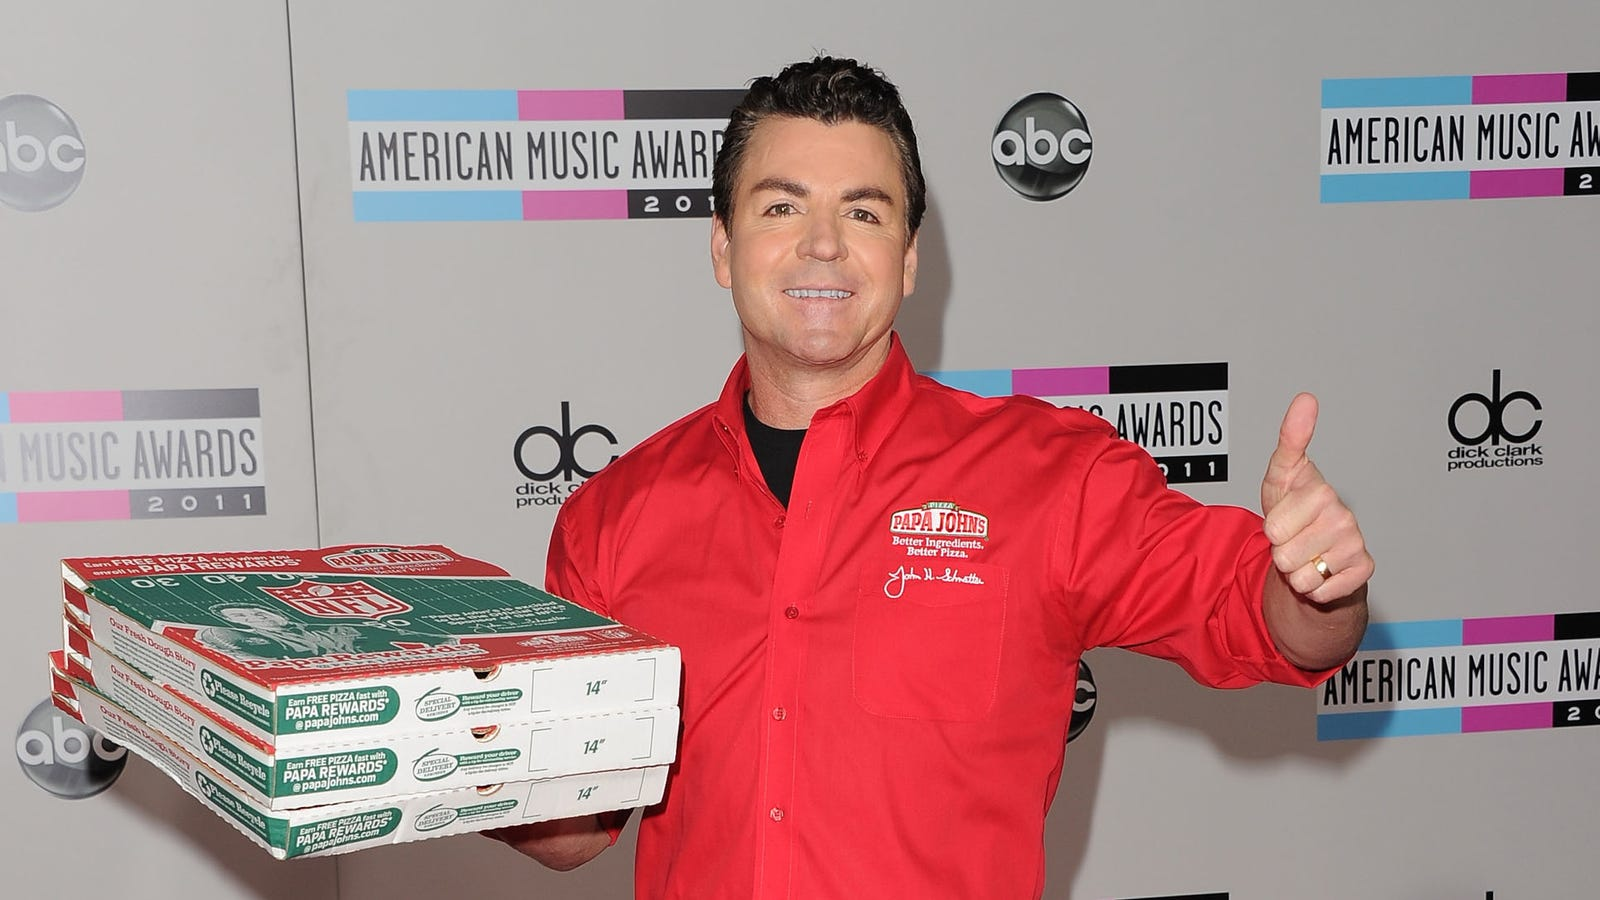 Papa John's now resorting to literally telling neo-Nazis to fuck off to get people to like them again